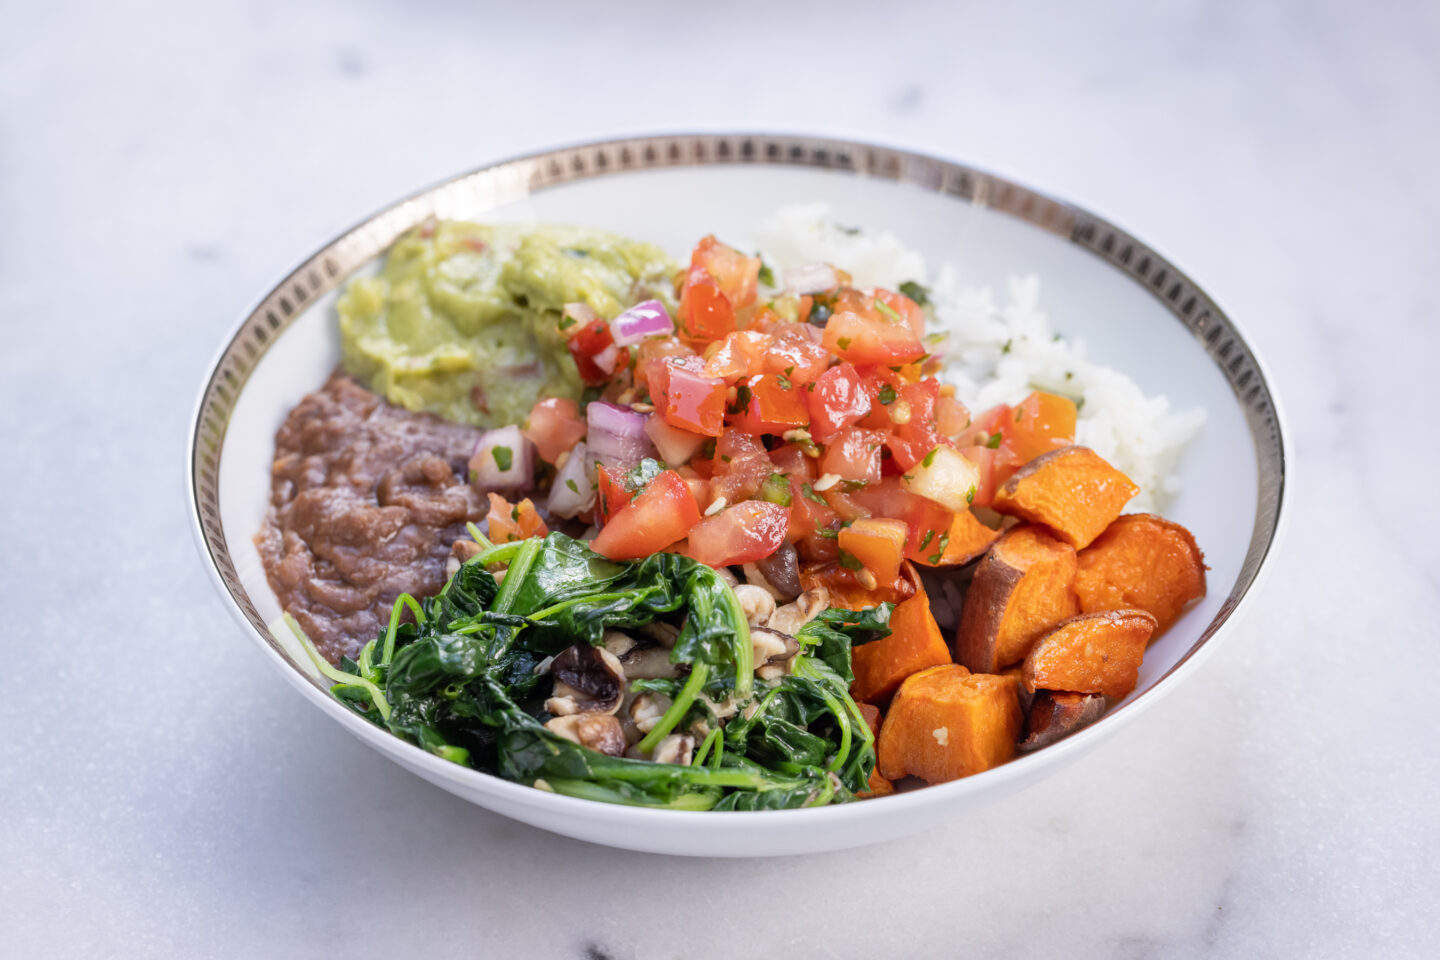 Sweet Potato, Black Bean and Cilantro Lime Rice Burrito Bowl with Sauteed Greens and Mushrooms, Pico de Gallo and Guacamole served with Siete Grain Free Chips and Salsa, Healthy Recipes, Vegan Recipes, Mexican Buddha Bowl, Gluten Free Recipes   Burrito Bowl by popular Dallas lifestyle blog, Pretty Little Shoppers: image of a sweet potato, black bean and cilantro lime rice burrito bowl.